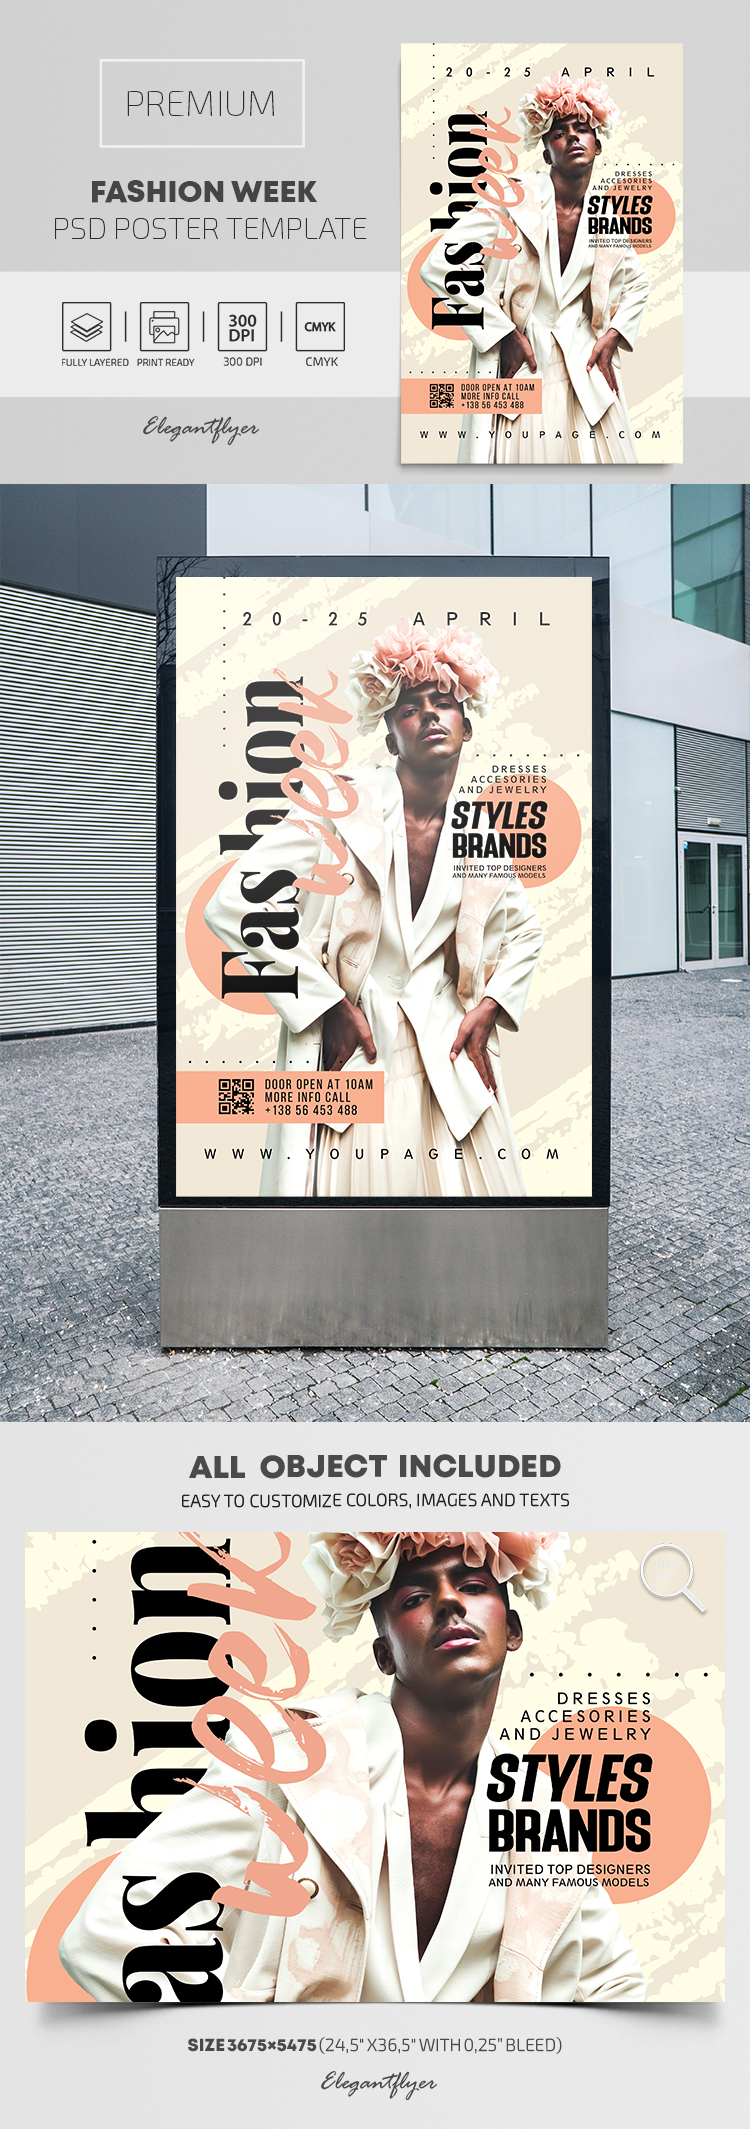 Fashion Week – Premium PSD Poster Template